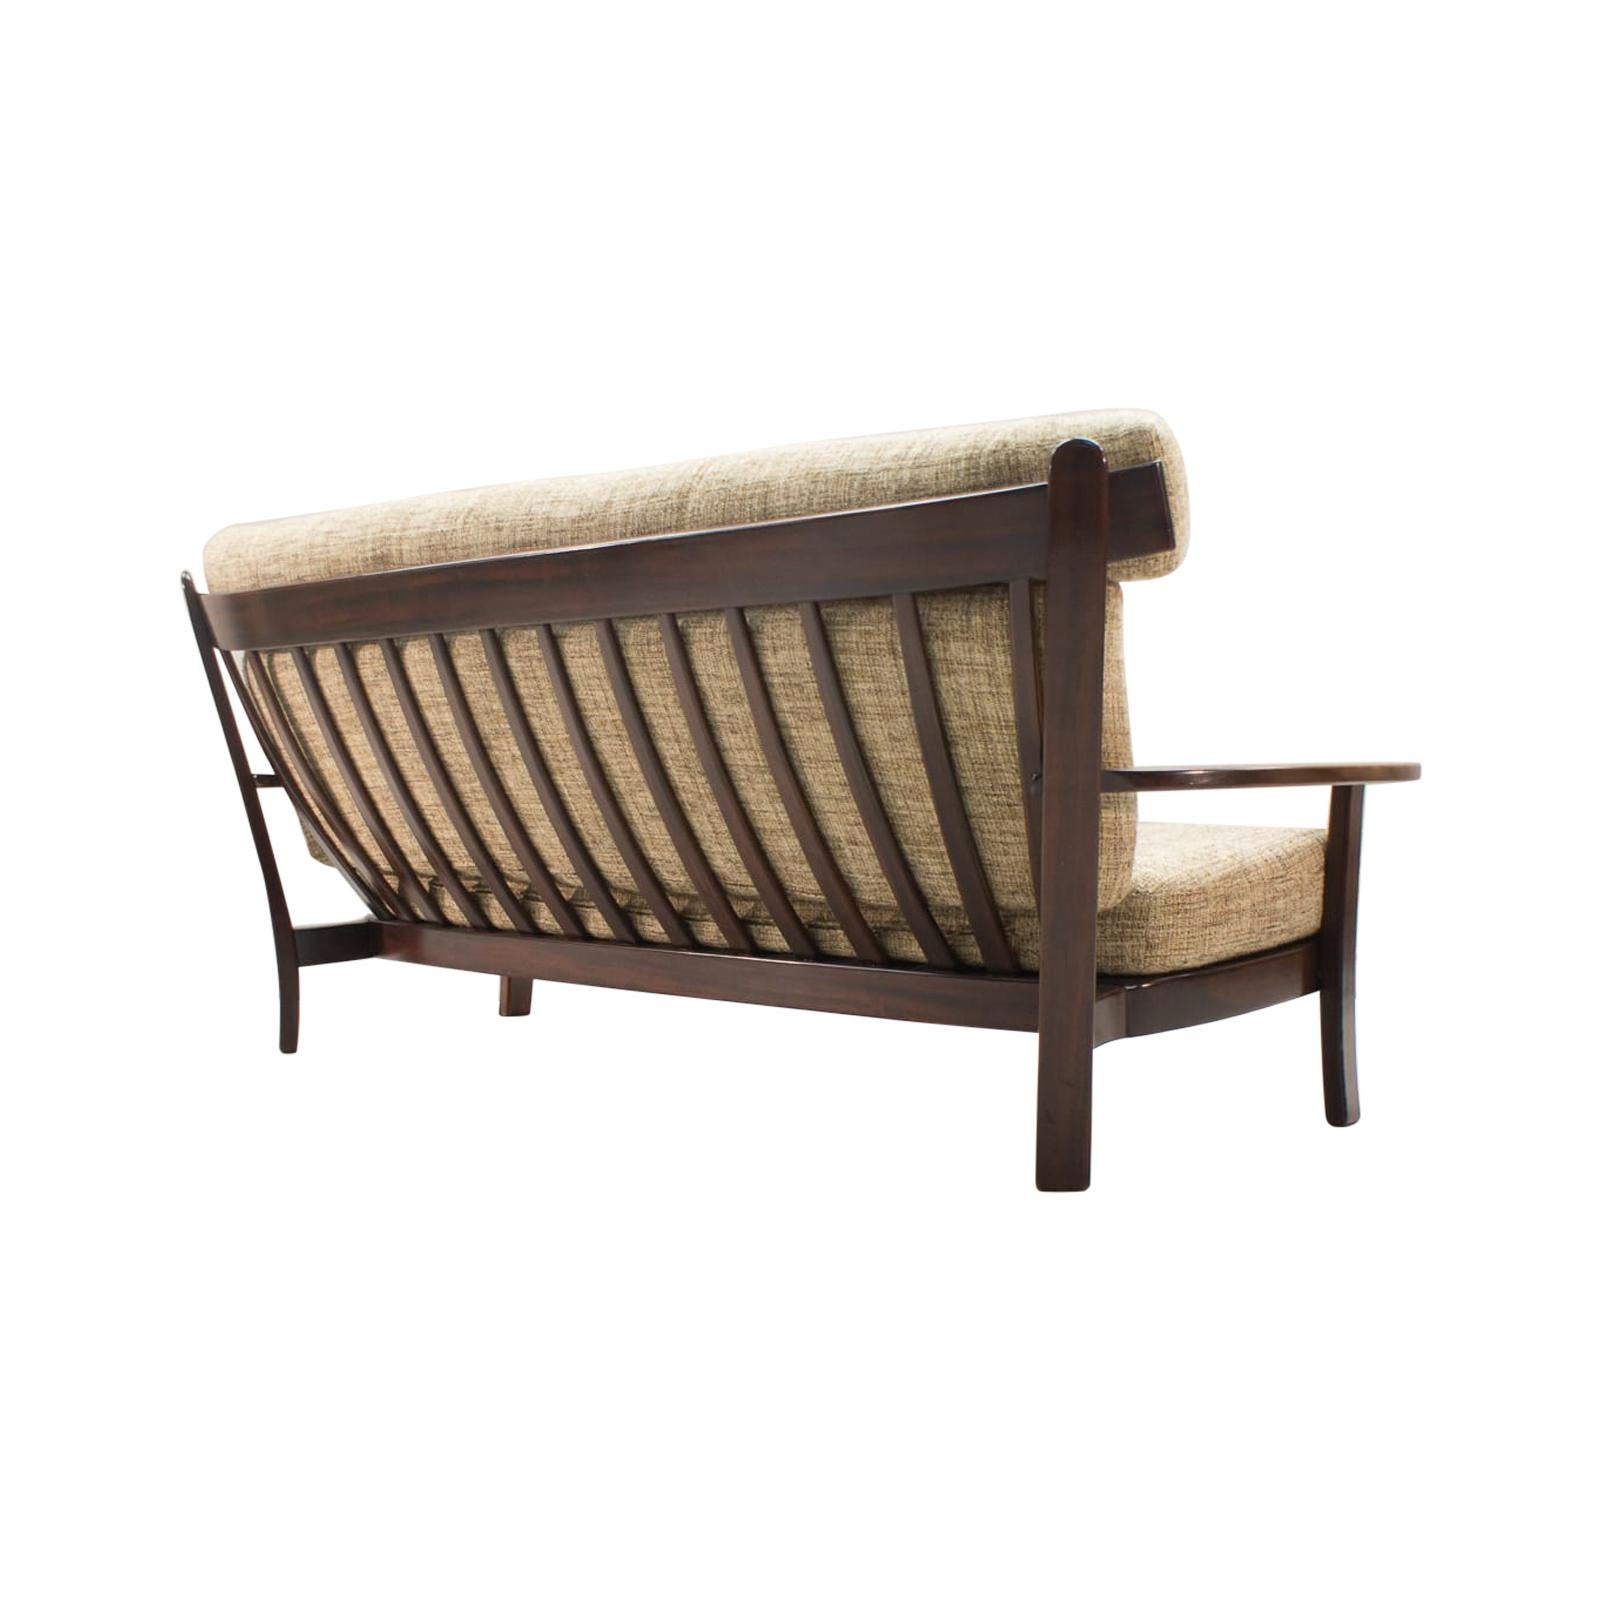 Large Brazilian Sofa in the Manner of Sergio Rodrigues, 1960s